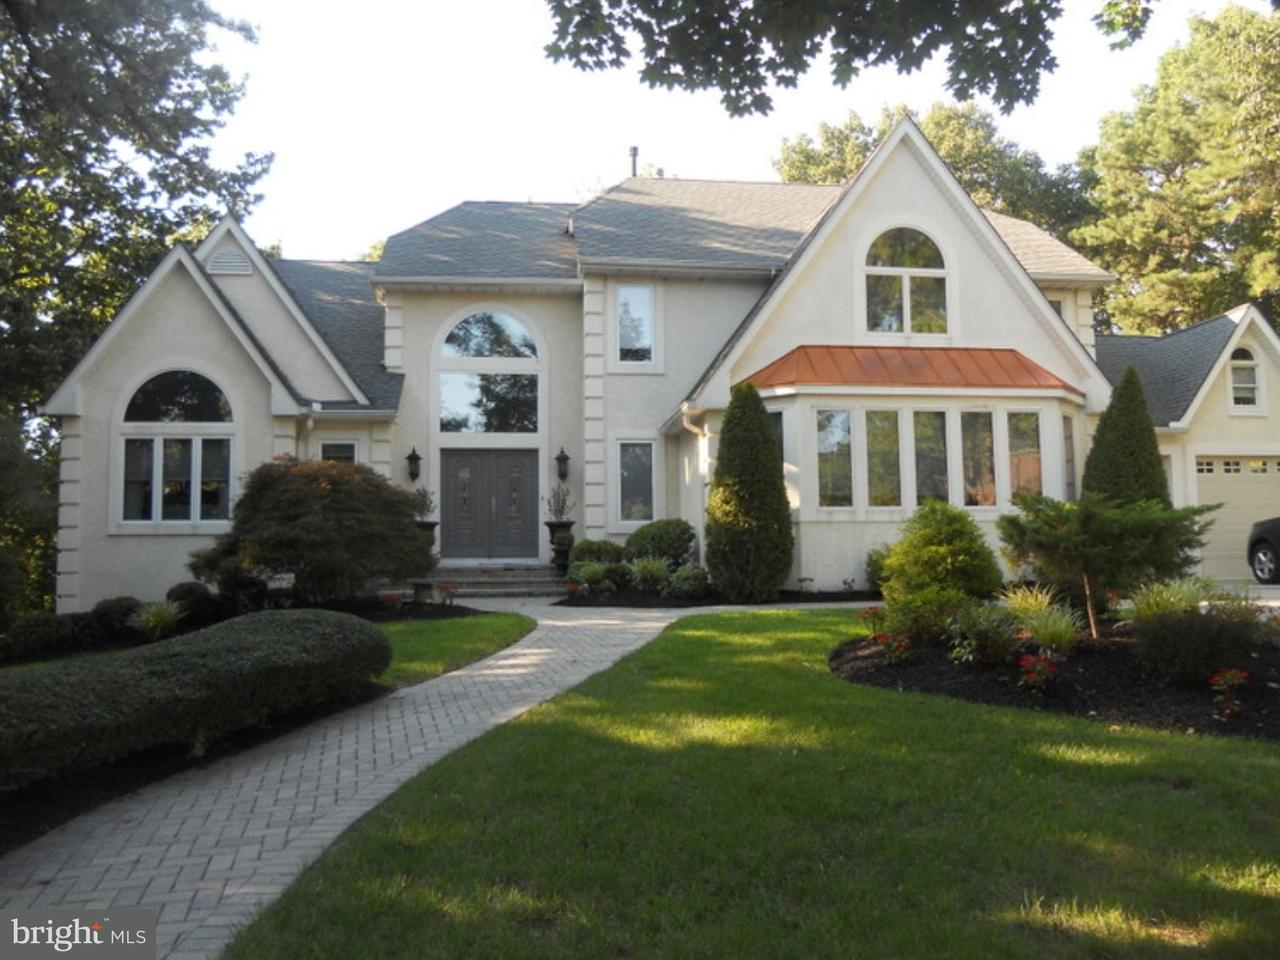 Single Family Home for Sale at 18 OVERLOOK Court Berlin, New Jersey 08009 United States